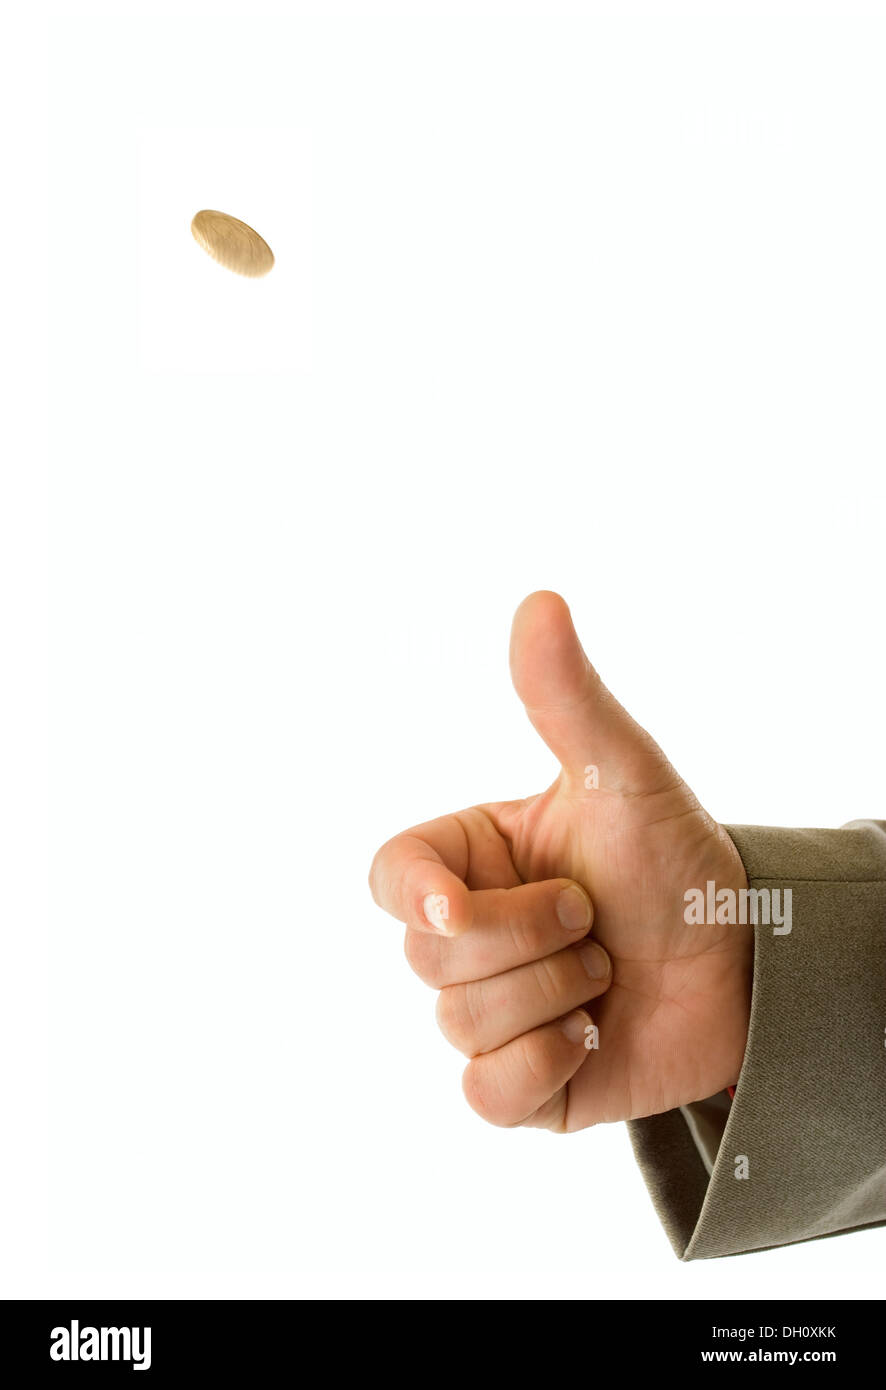 Man's hand throwing up a coin to make a decision - Stock Image